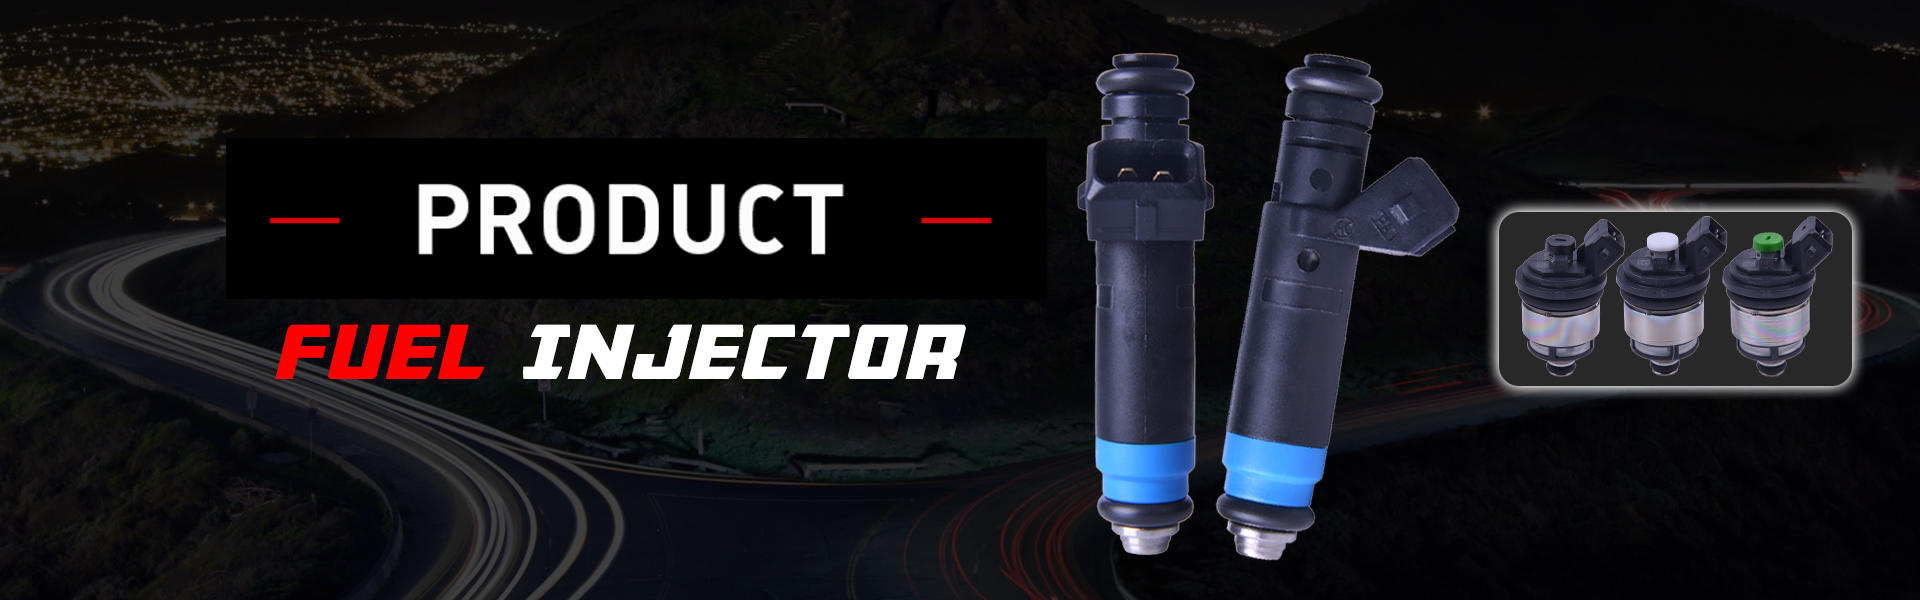 category-nissan sentra fuel injector replacement-DEFUS-img